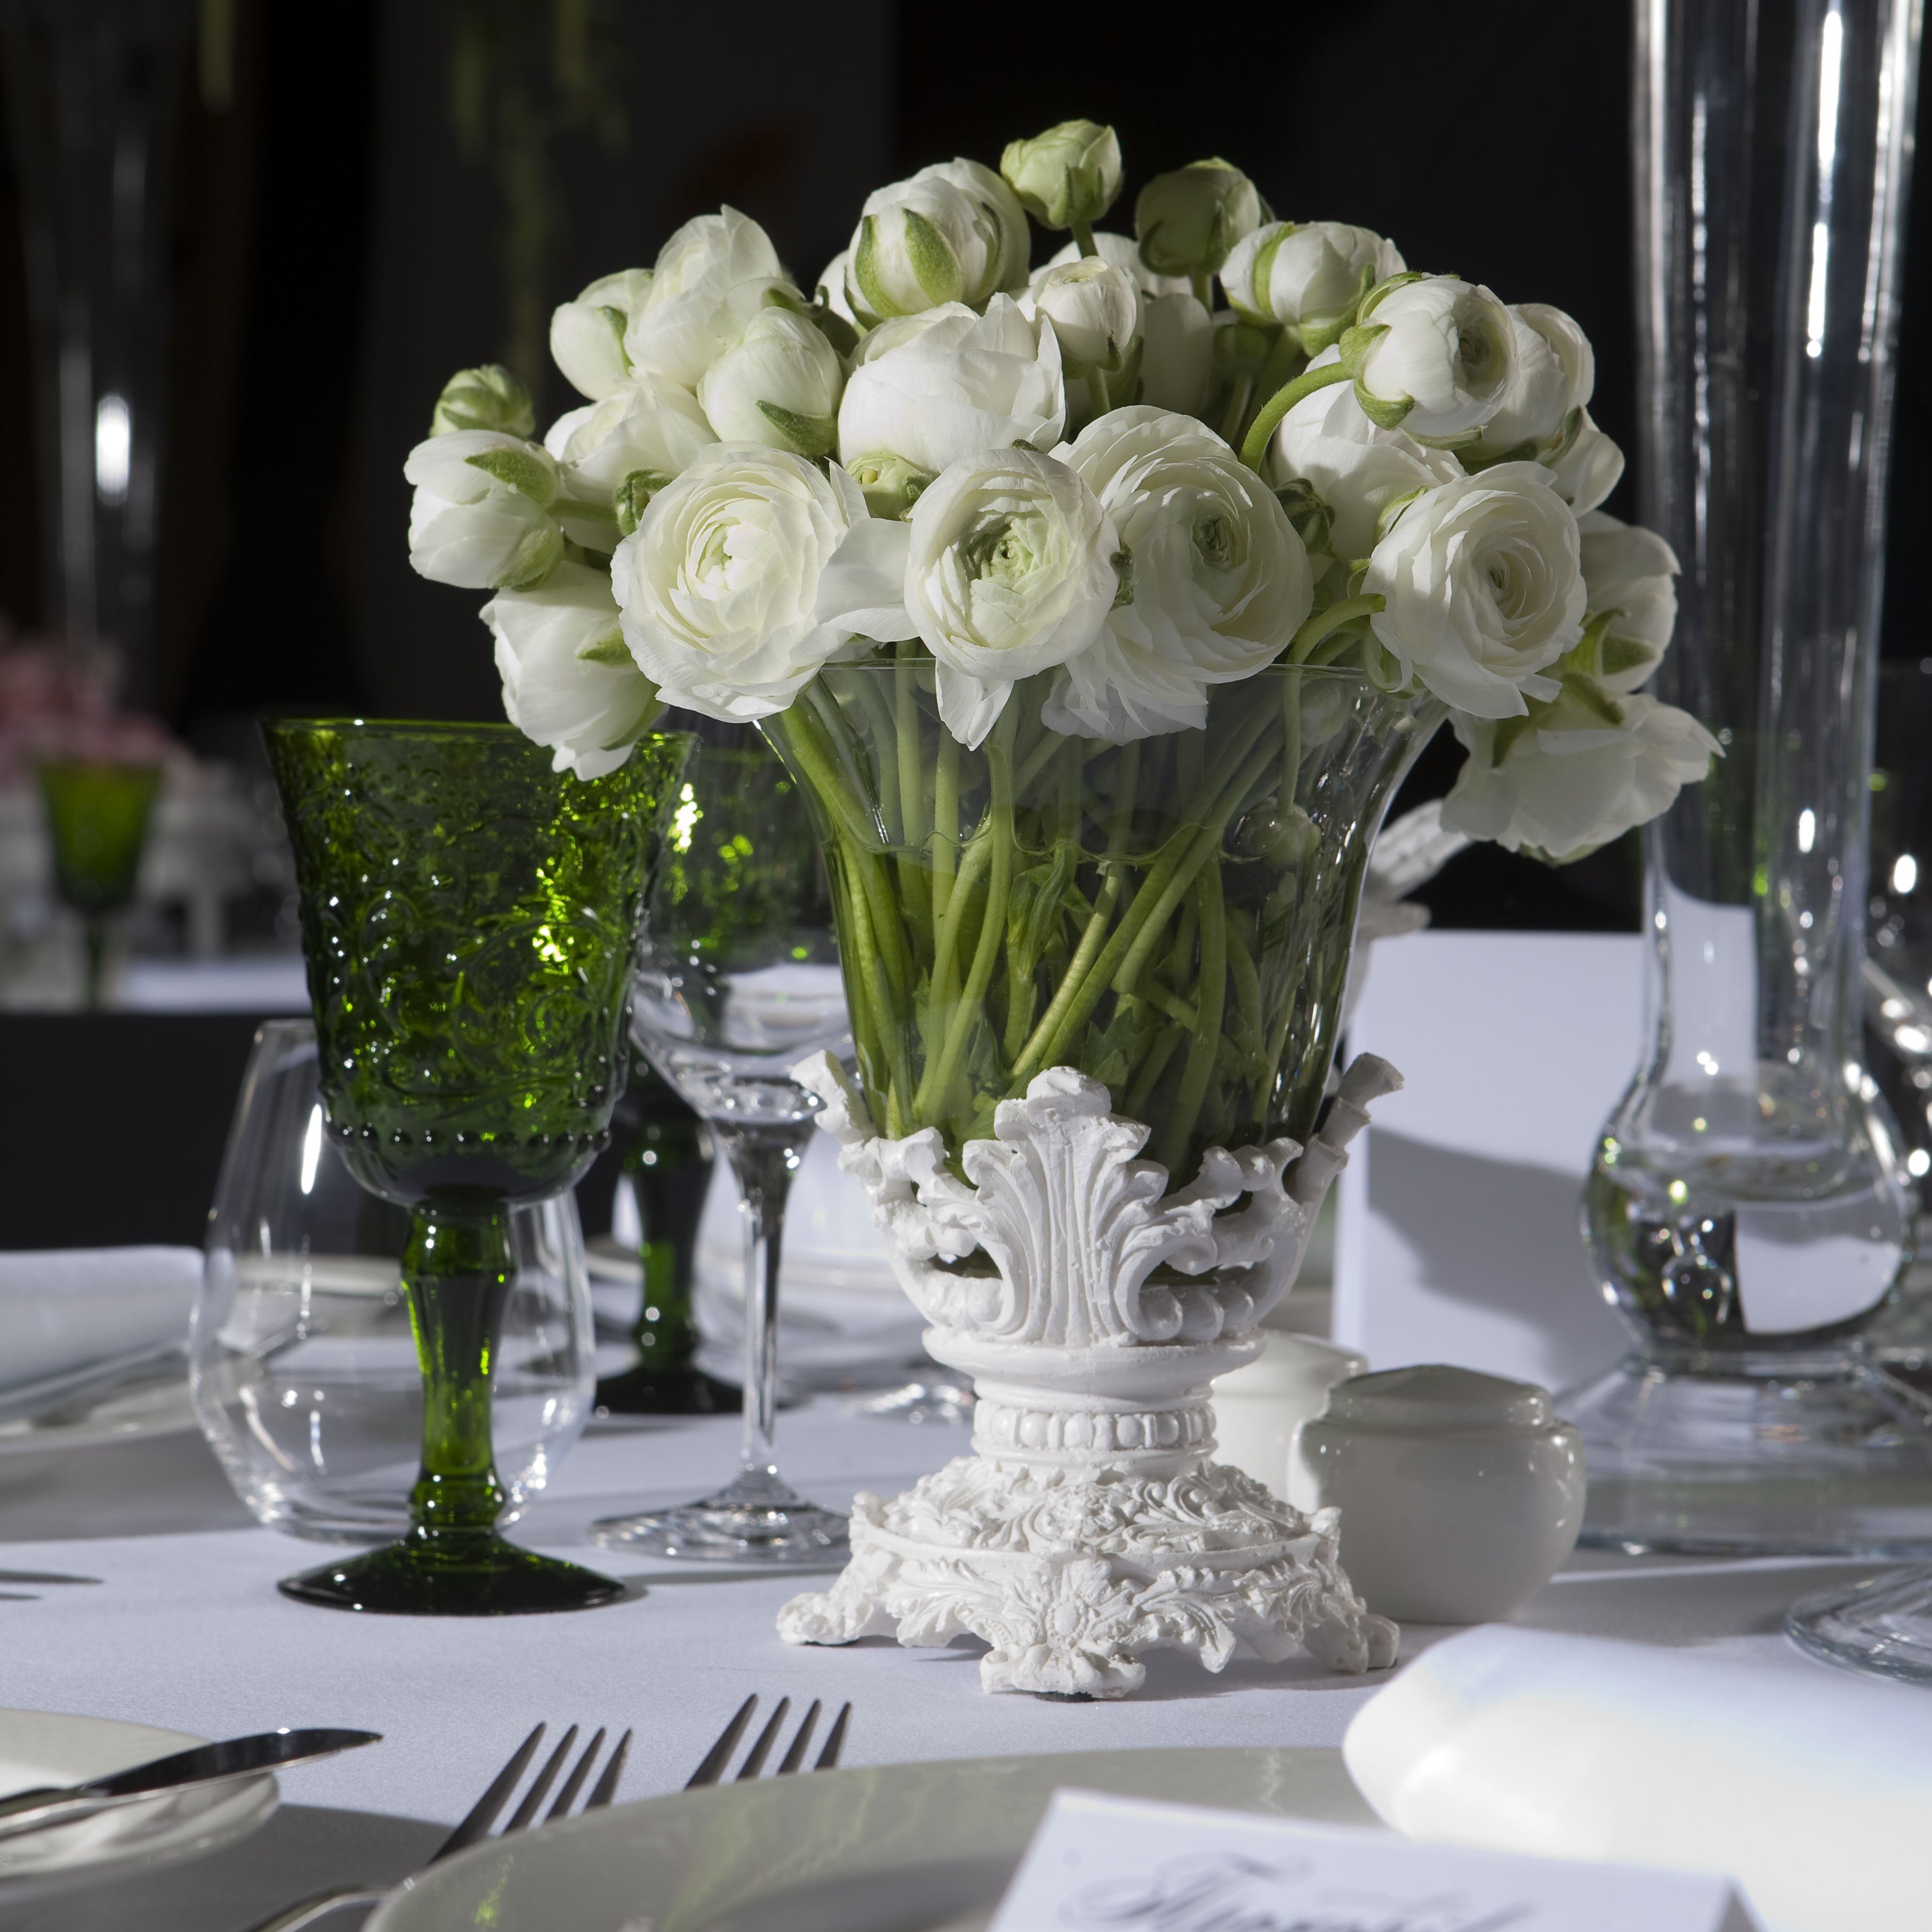 Wedding decoration ideas simple  flowers for tables at wedding reception  receptiontable  Table